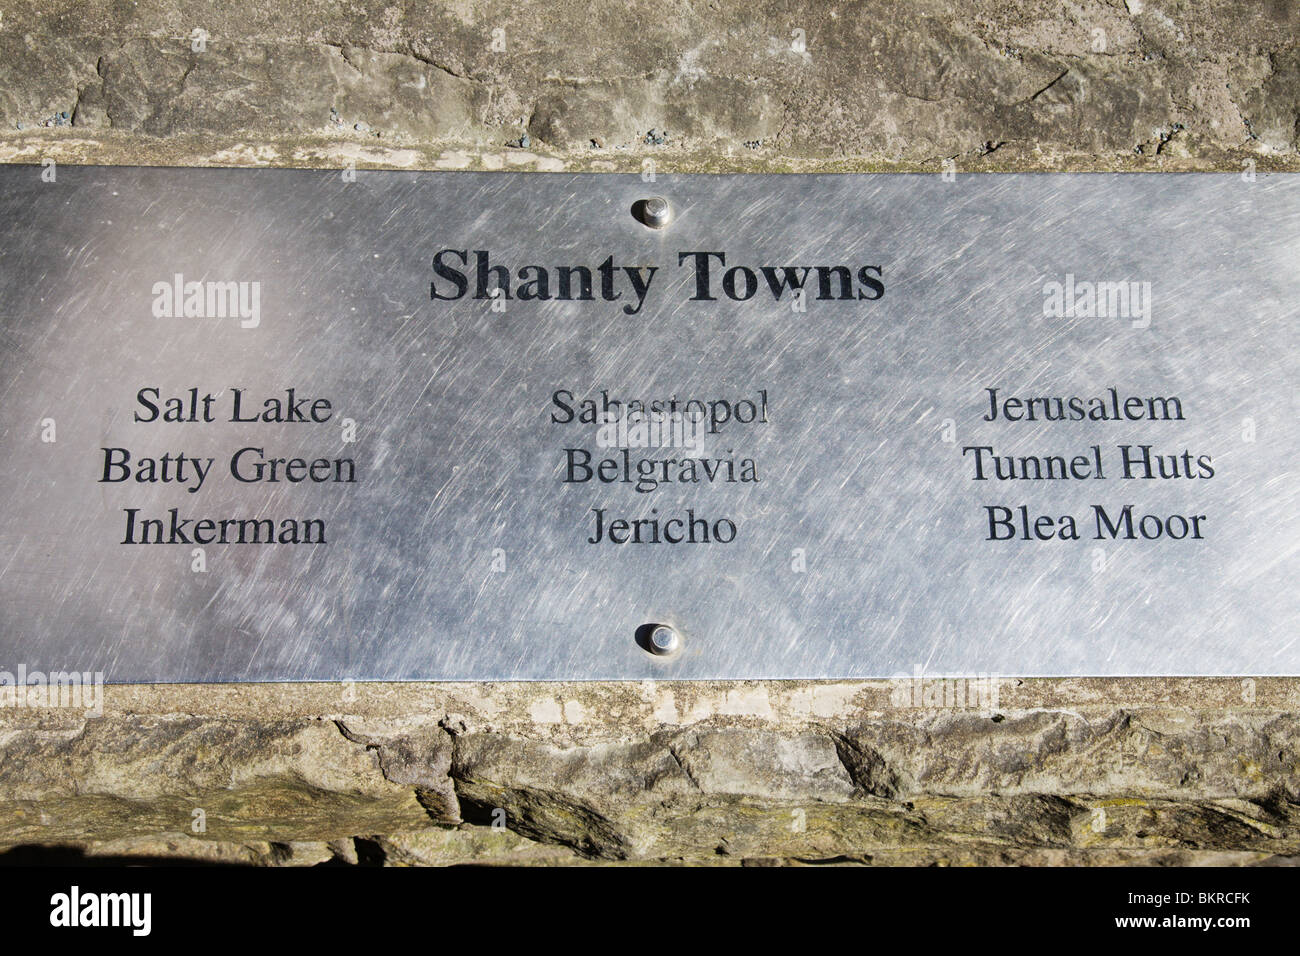 A plaque listing the historic Shanty Towns at the Ribblehead Viaduct. - Stock Image